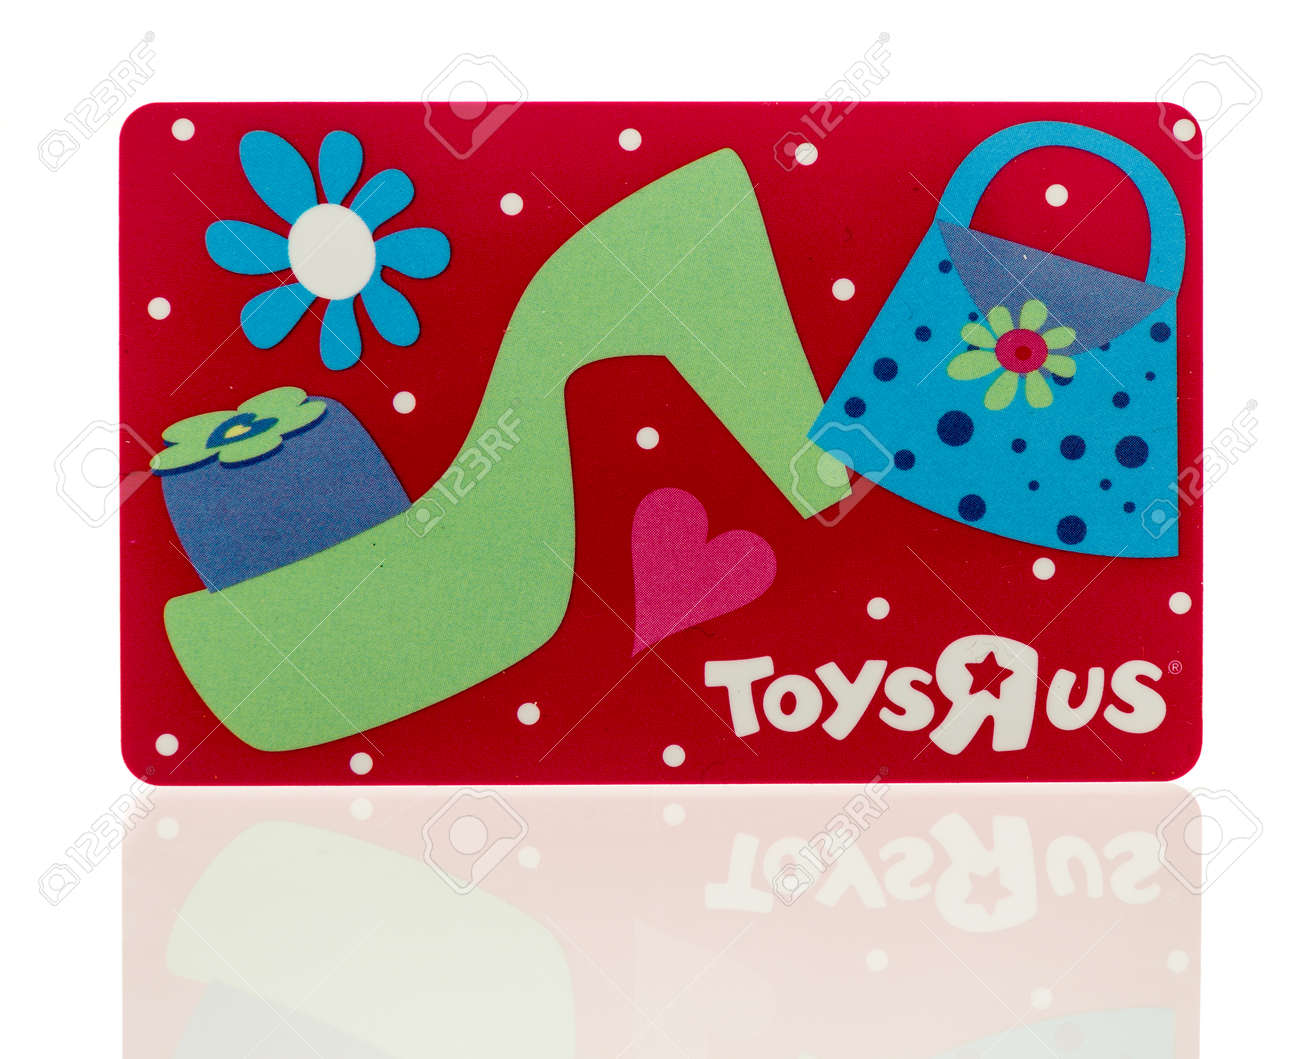 Winneconne Wi 28 December 2016 Gift Card From Toys R Us Stock